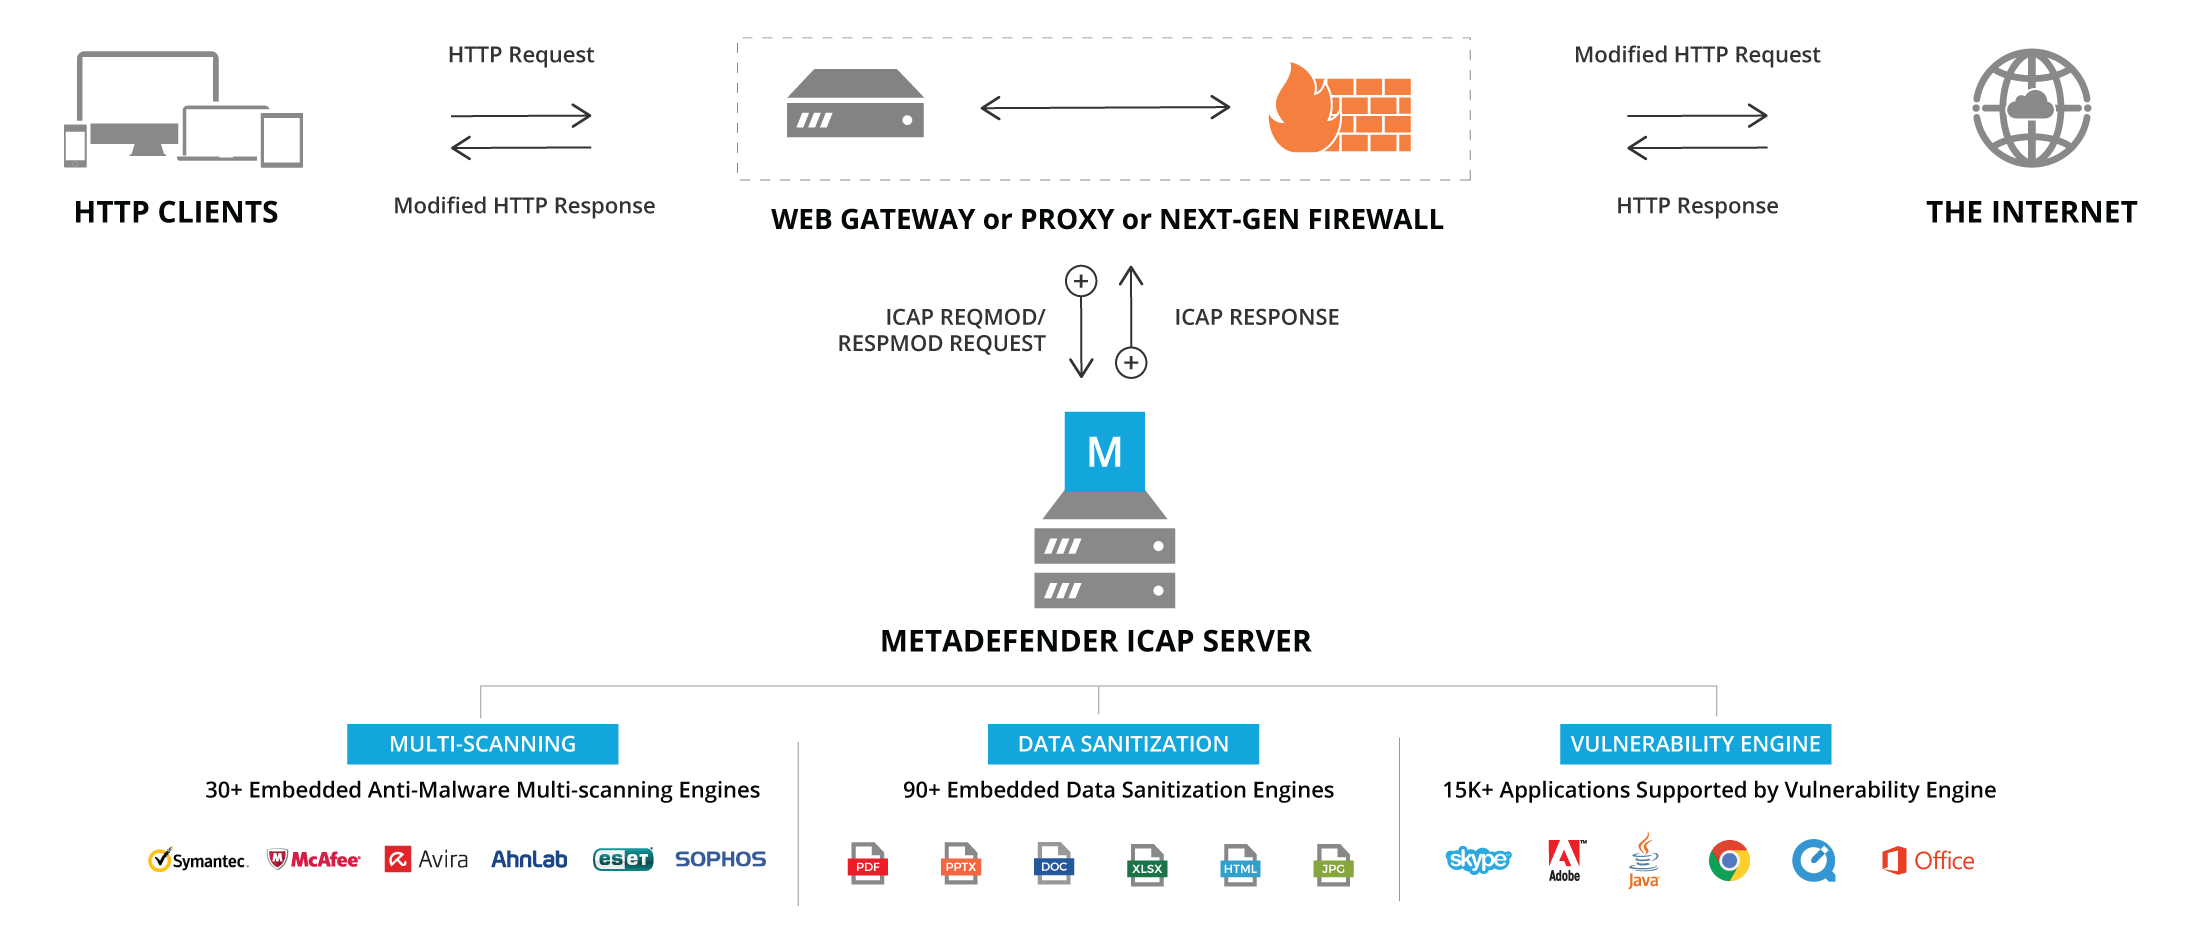 Schematische ICAP-Server Integration mit Metadefender Core